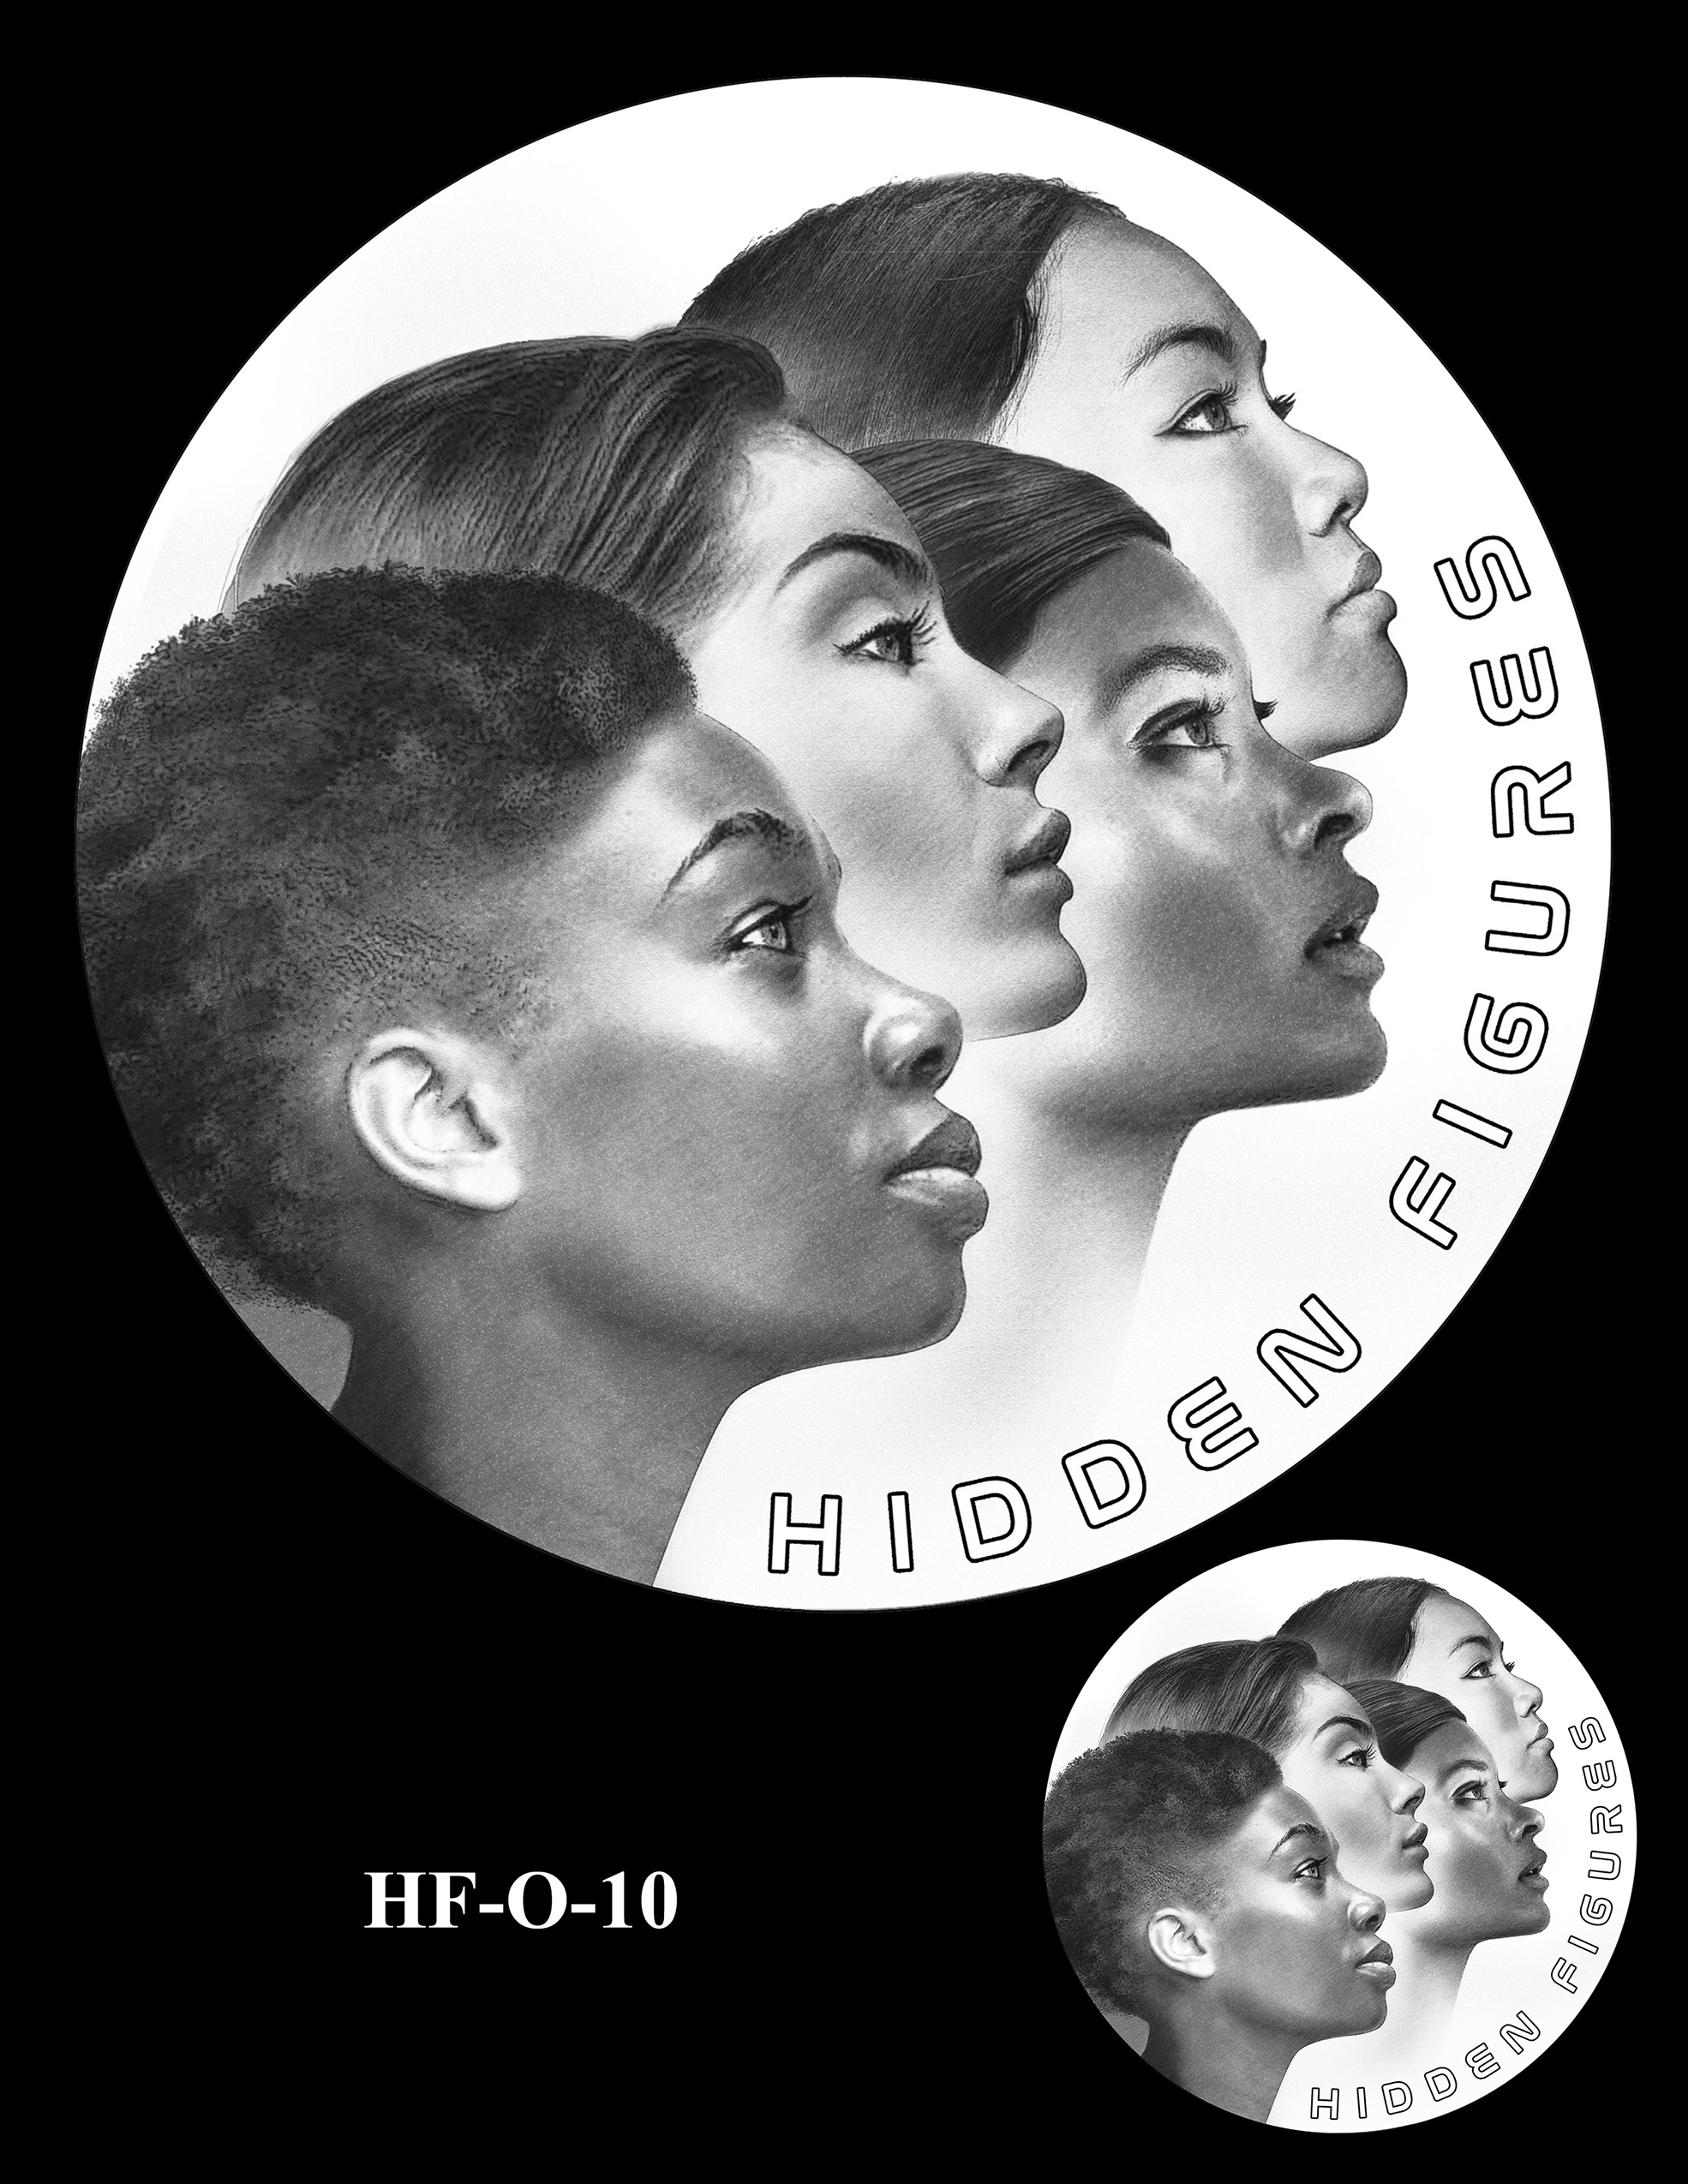 HF-O-10 -- Hidden Figures Group Congressional Gold Medal